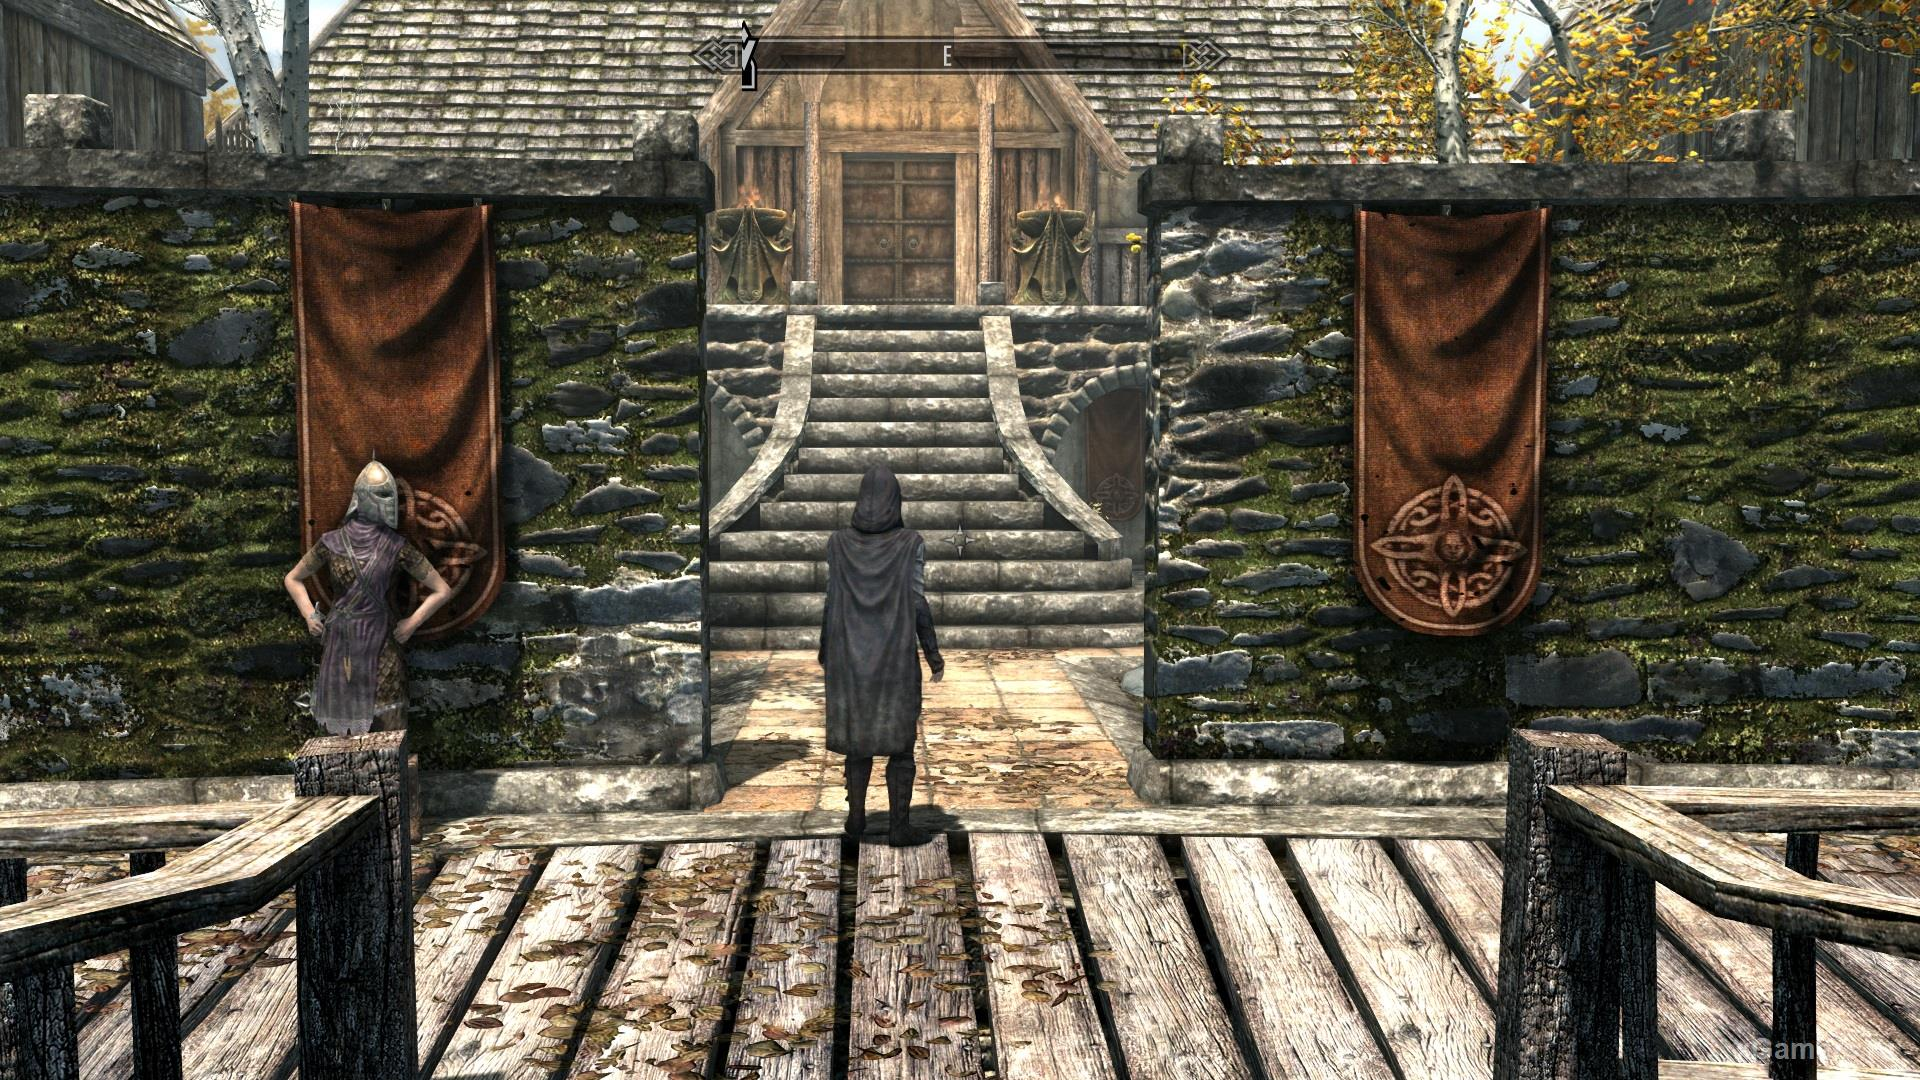 How to get married in Skyrim and where is better ti live